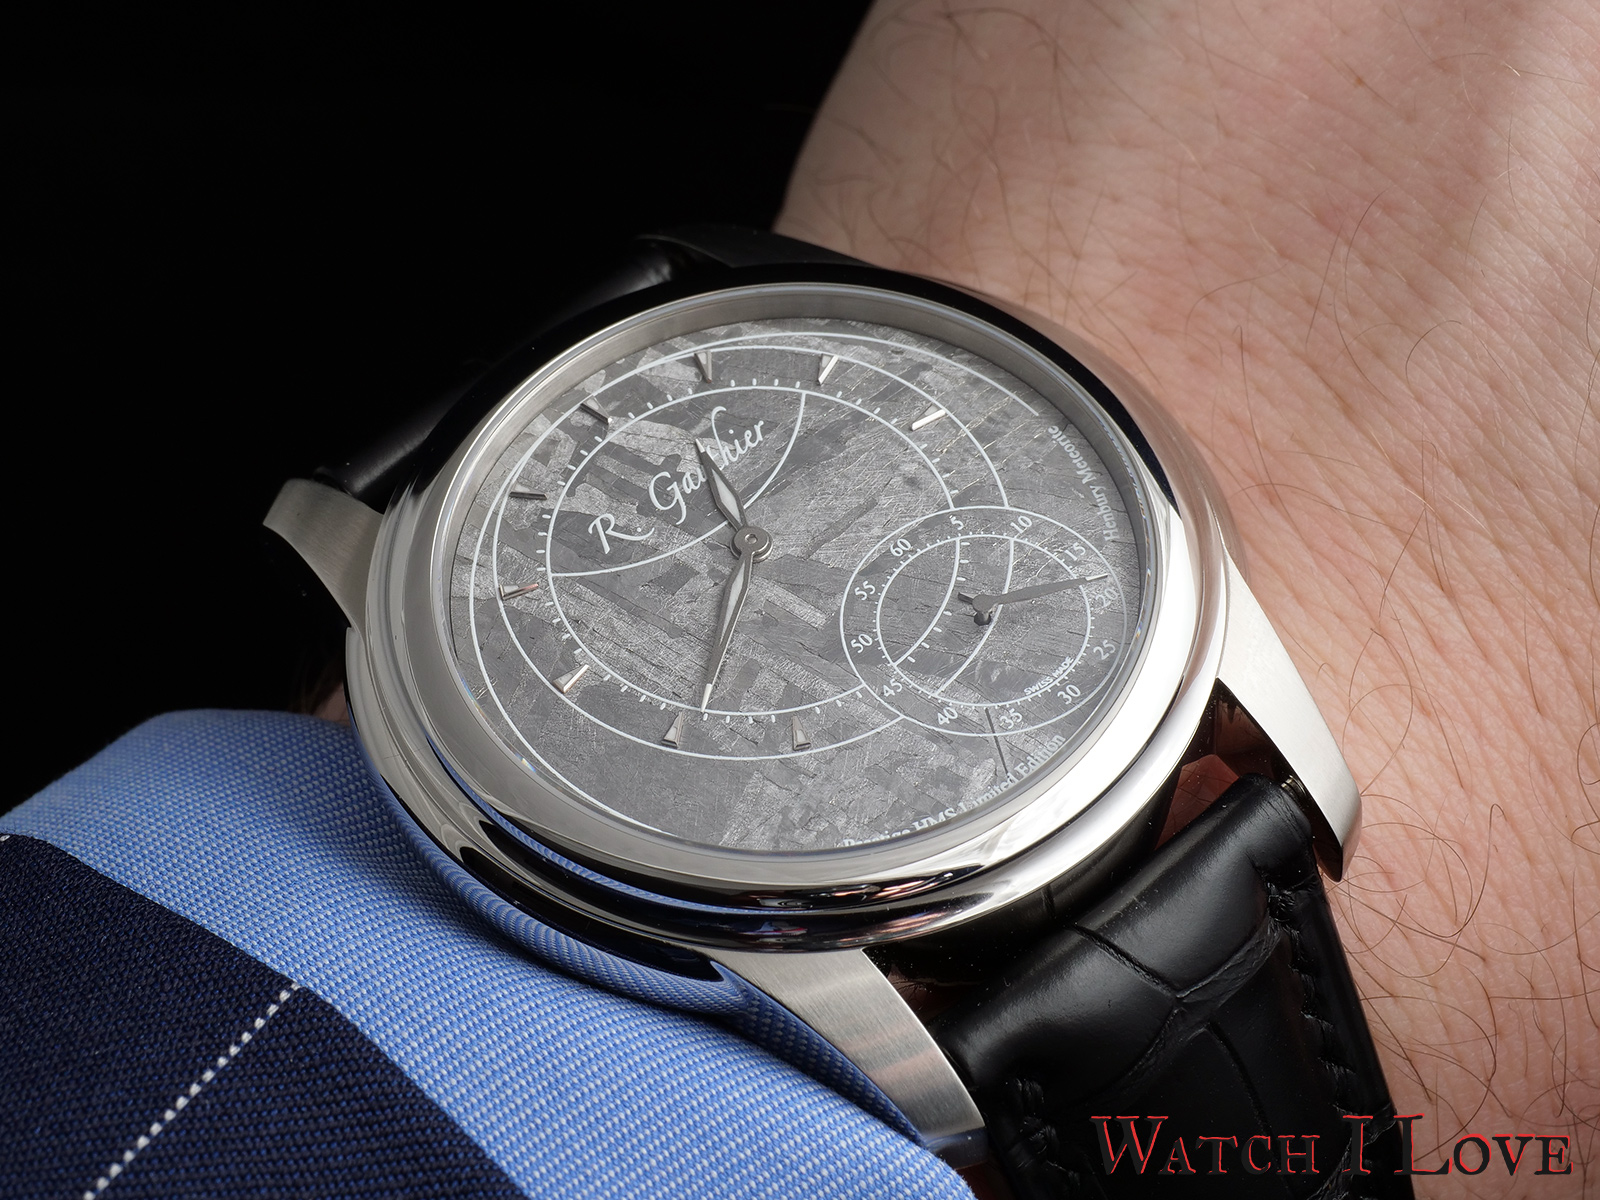 The Romain Gauthier Prestige HMS Stainless Steel on the wrist